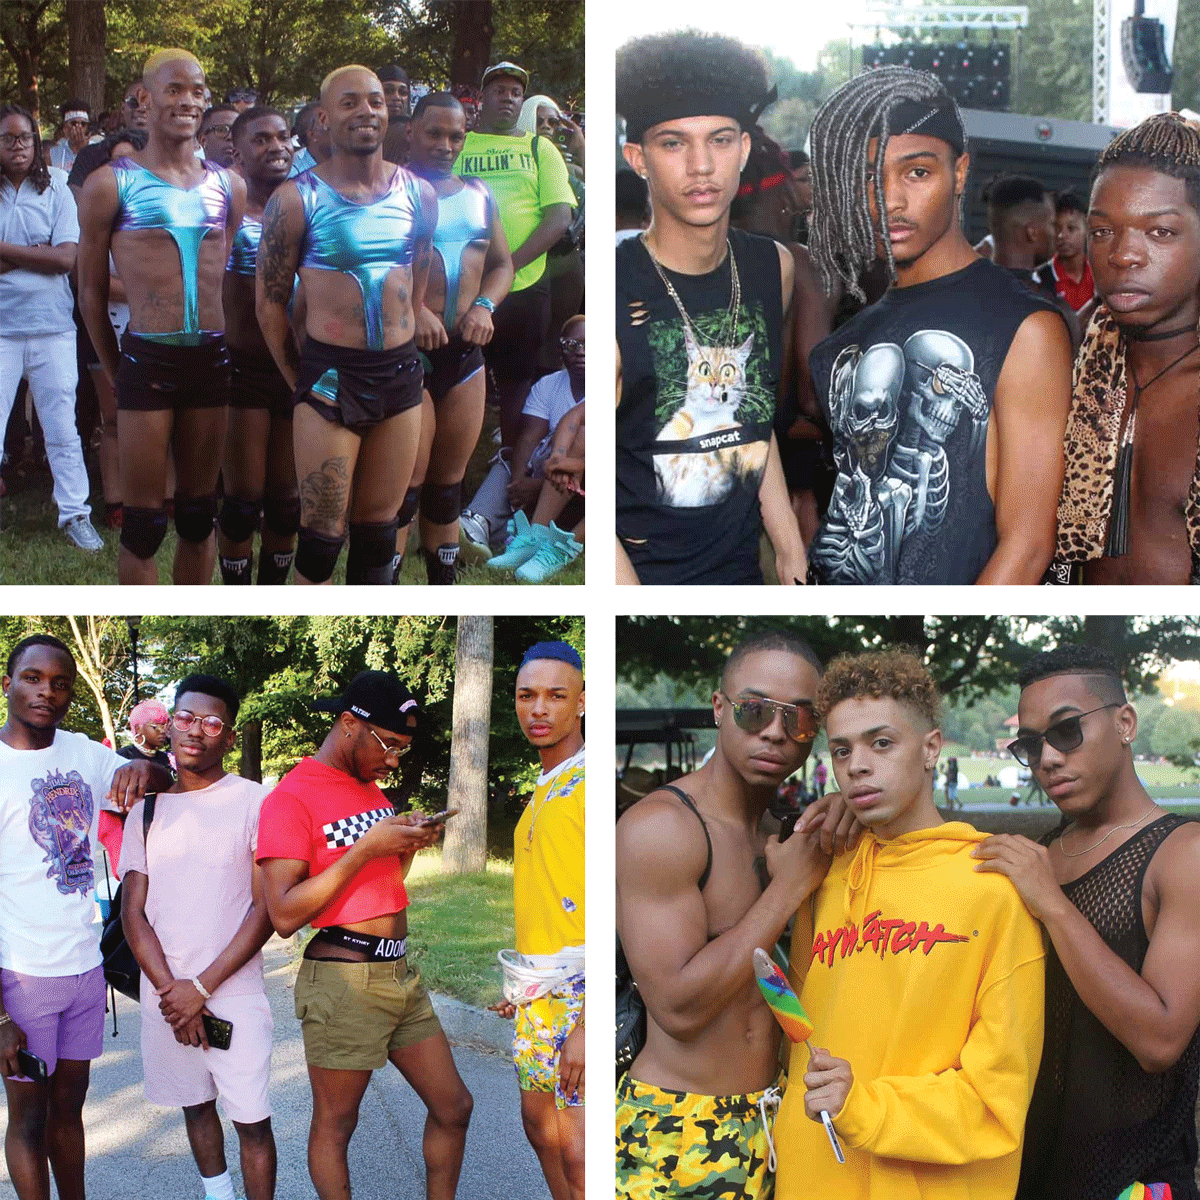 Groups of black gay men at various pride events